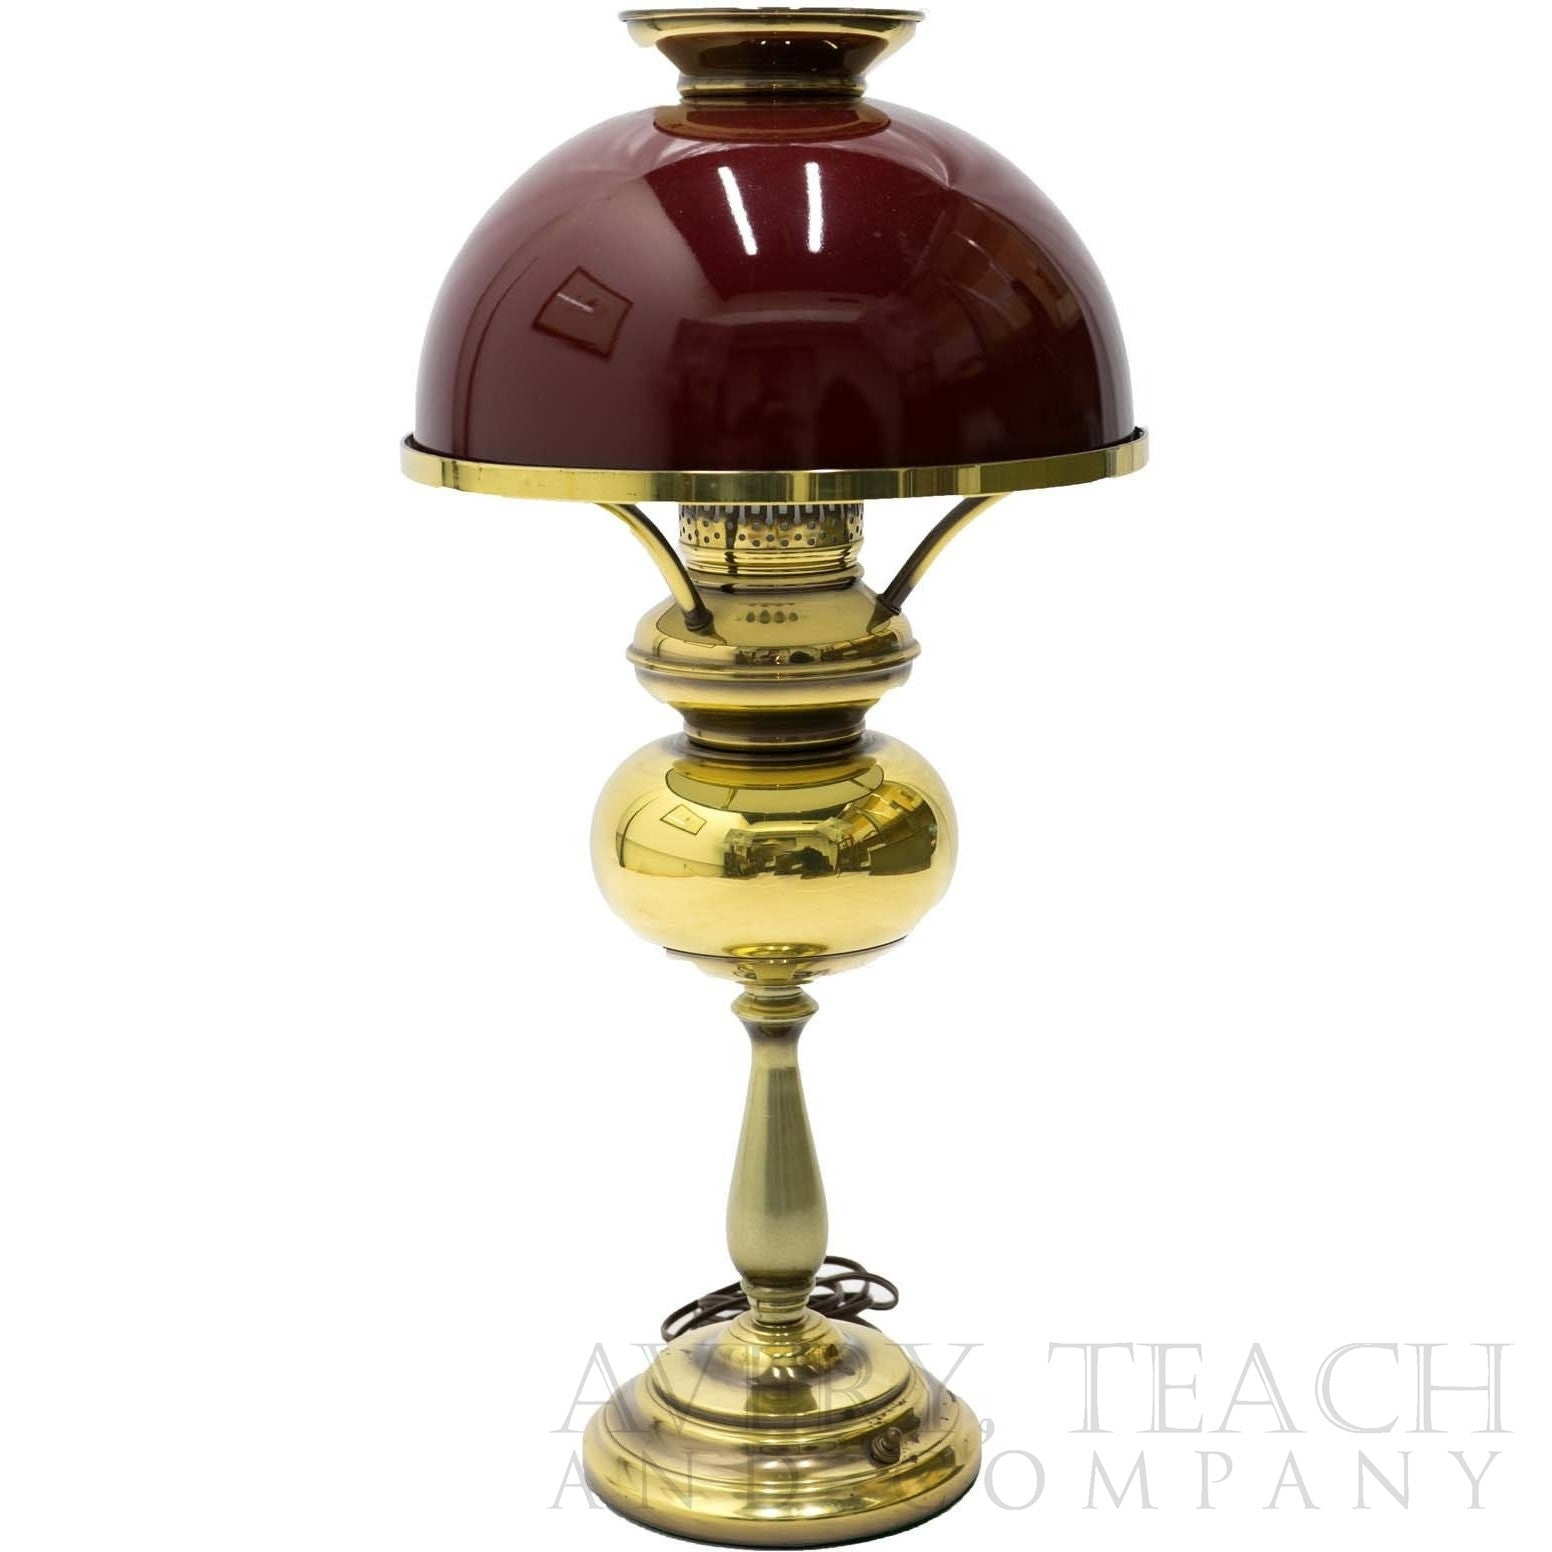 A vintage hurricane lamp with a dark red shade and golden base.